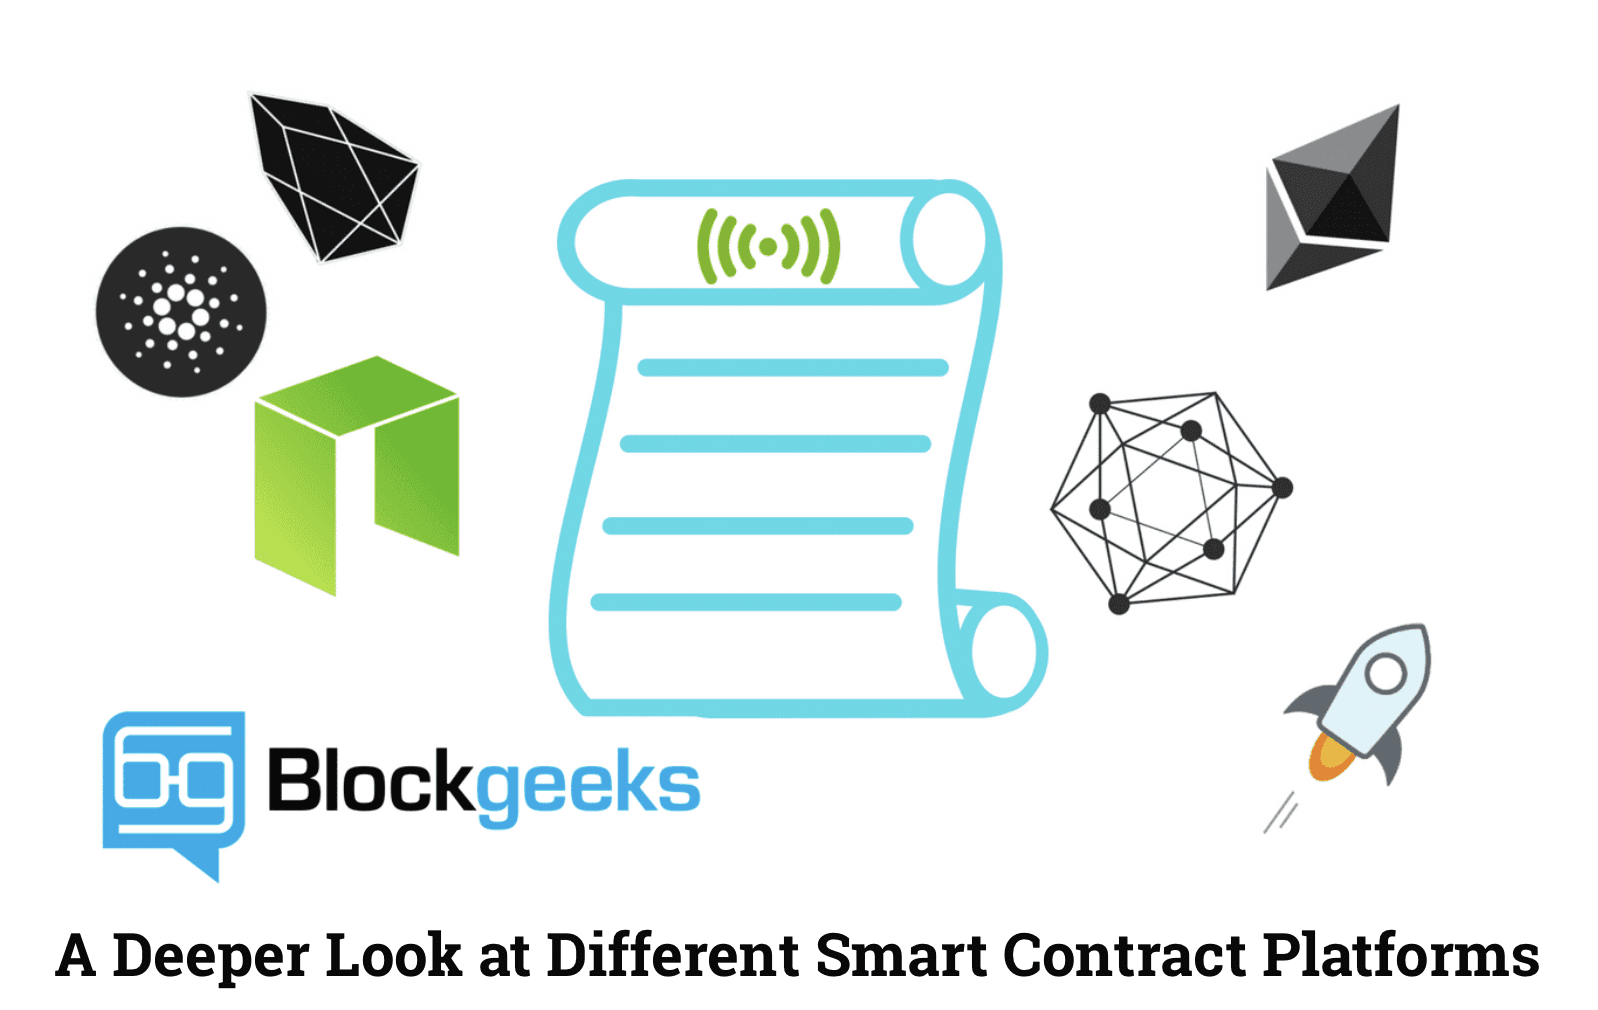 Ethereum Ushered In The Era Of Second Generation Blockchain And People Finally Saw True Potential Dapps Smart Contracts